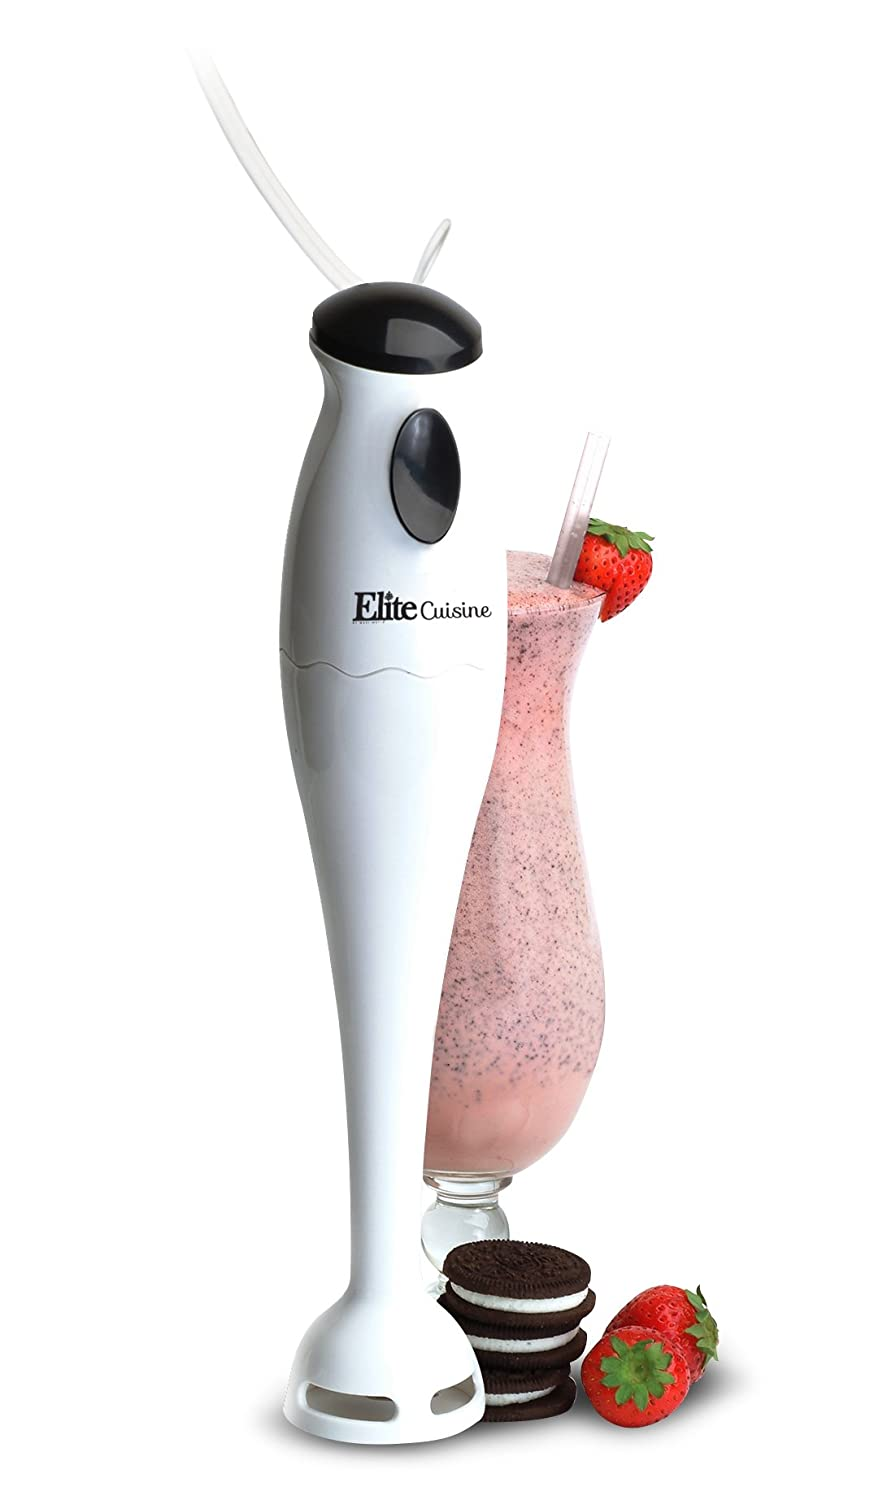 Elite Cuisine EHB-1000X Electric Immersion Hand Blender, Mixer, Chopper, 1-Touch Soups, Sauces, Baby Food, Compact Storage, Easy Clean, 150 Watts, White